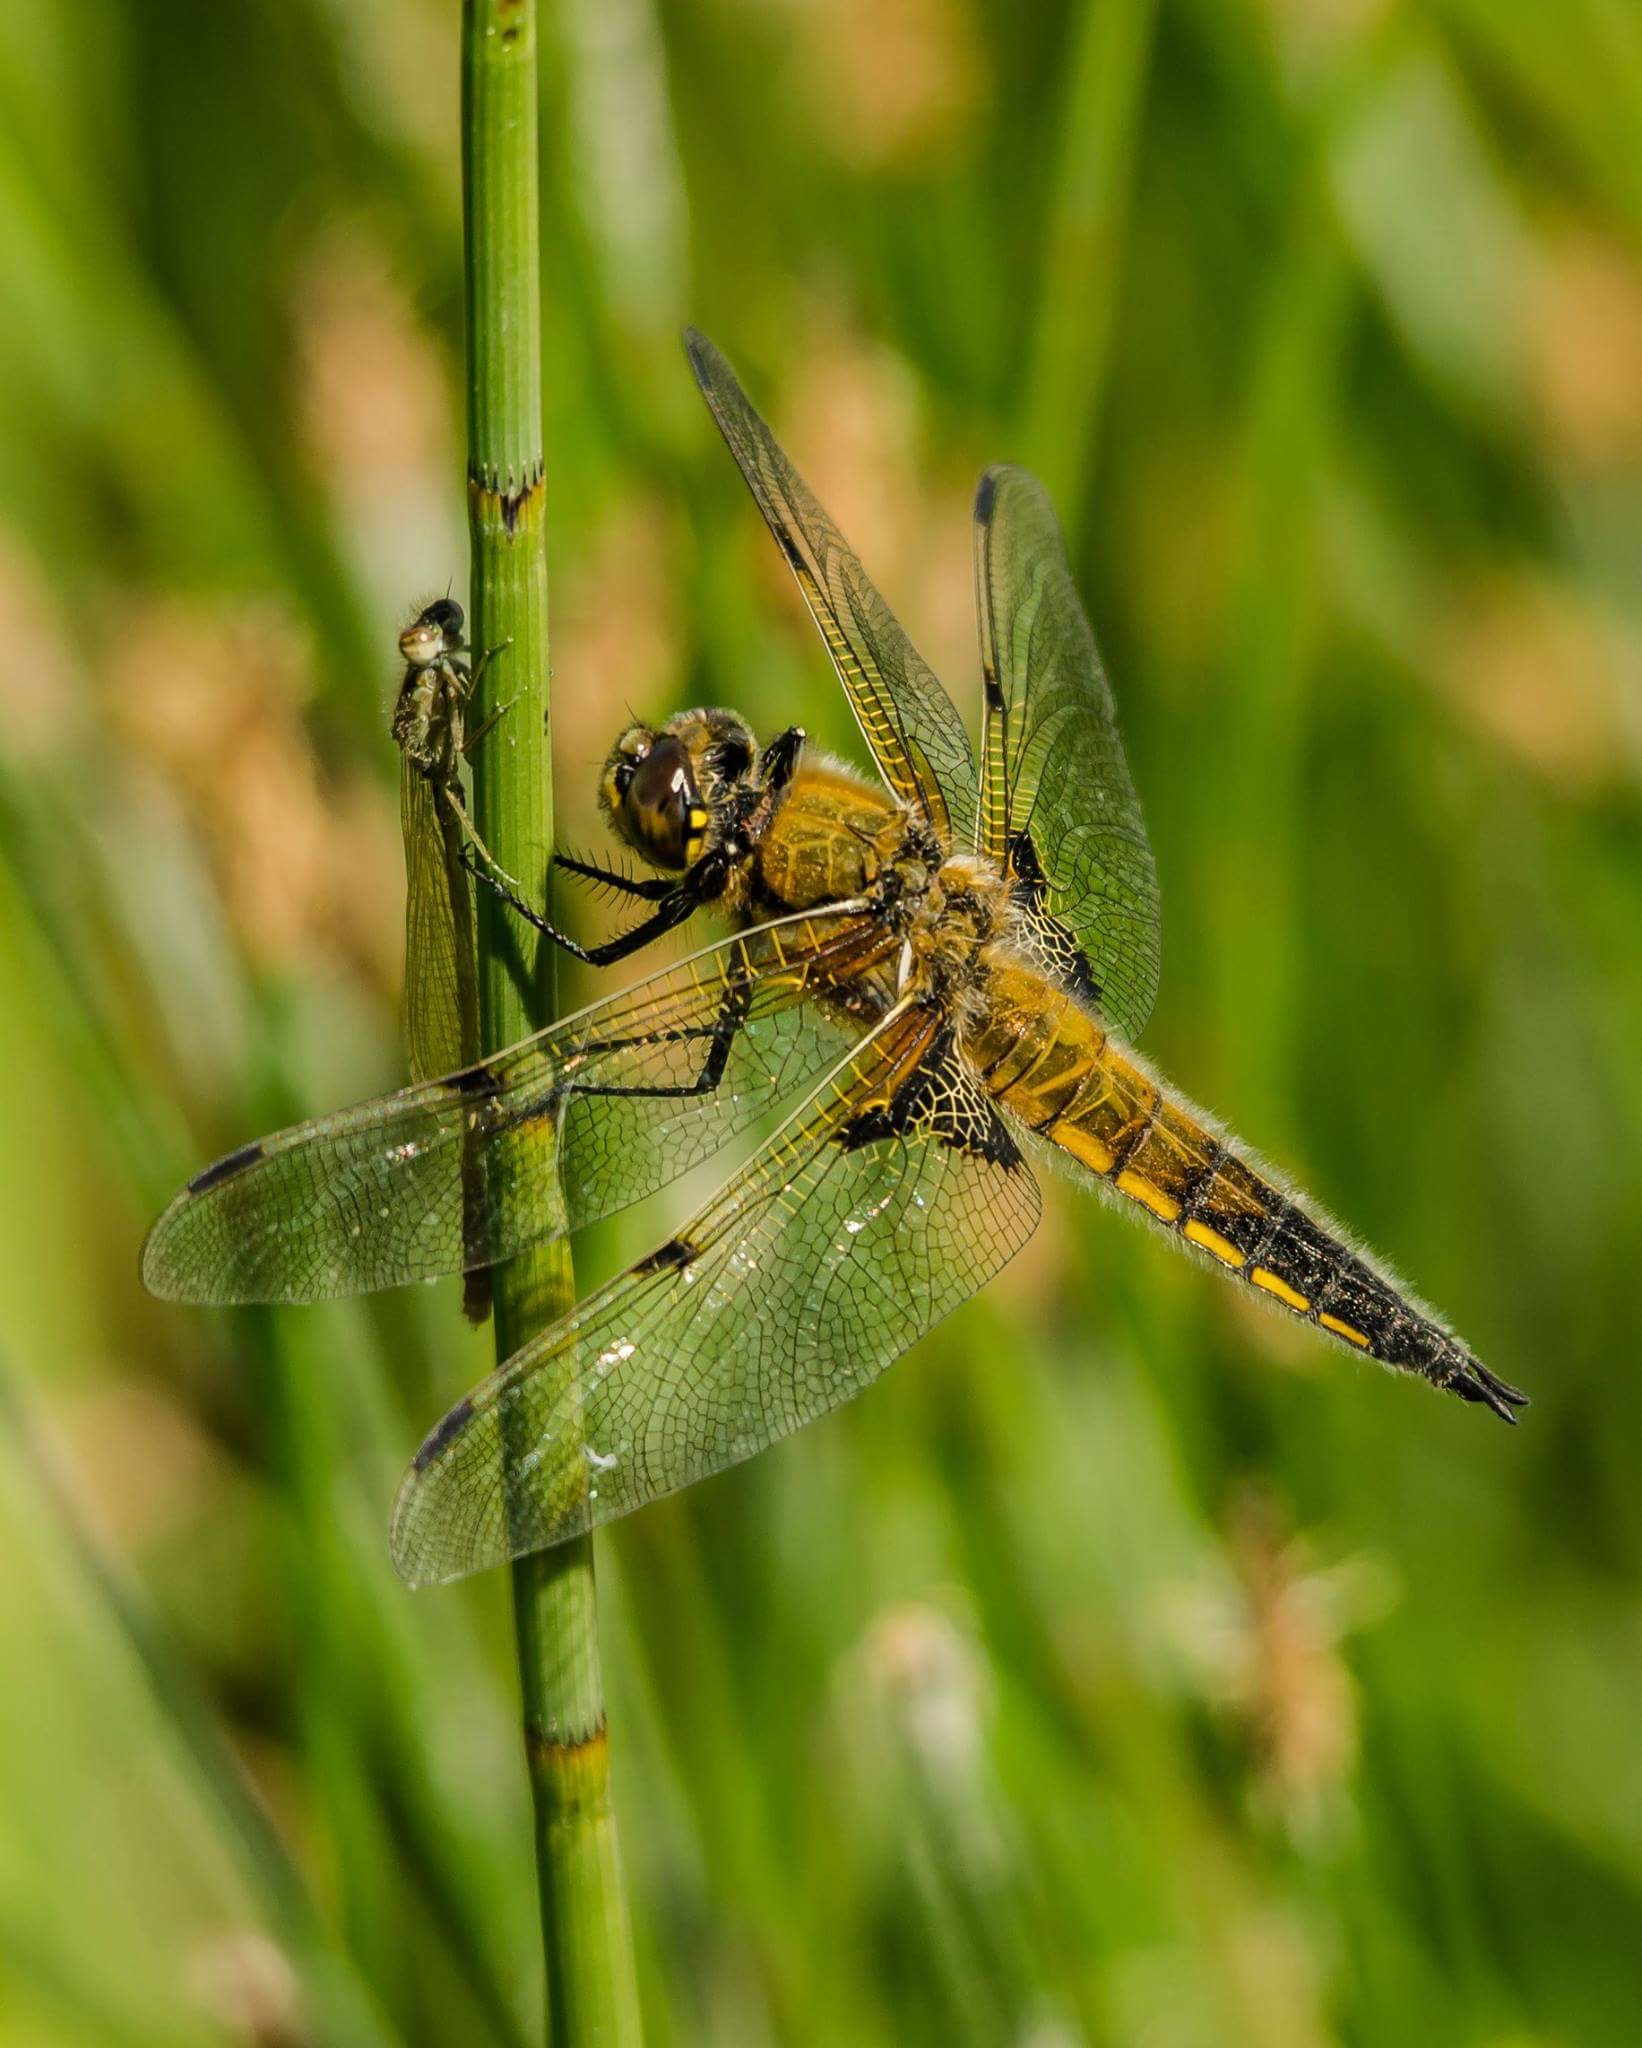 Dragonfly lands on tall green stem